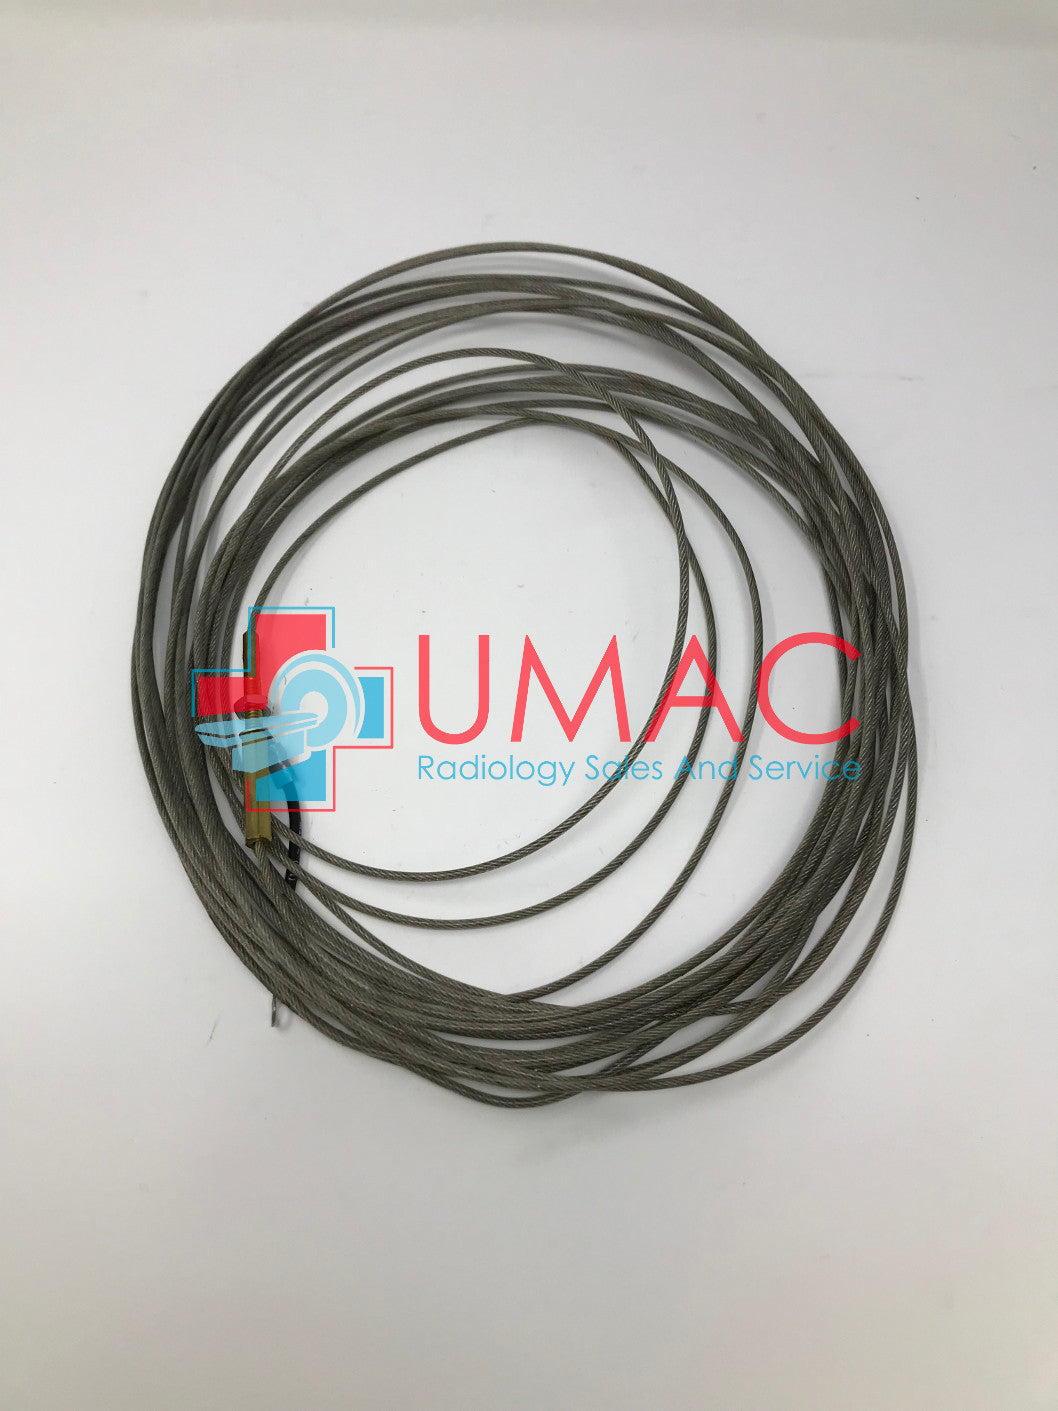 GE Lunar Prodigy Bone Density LNR-8514 Longitudinal Drive Cable